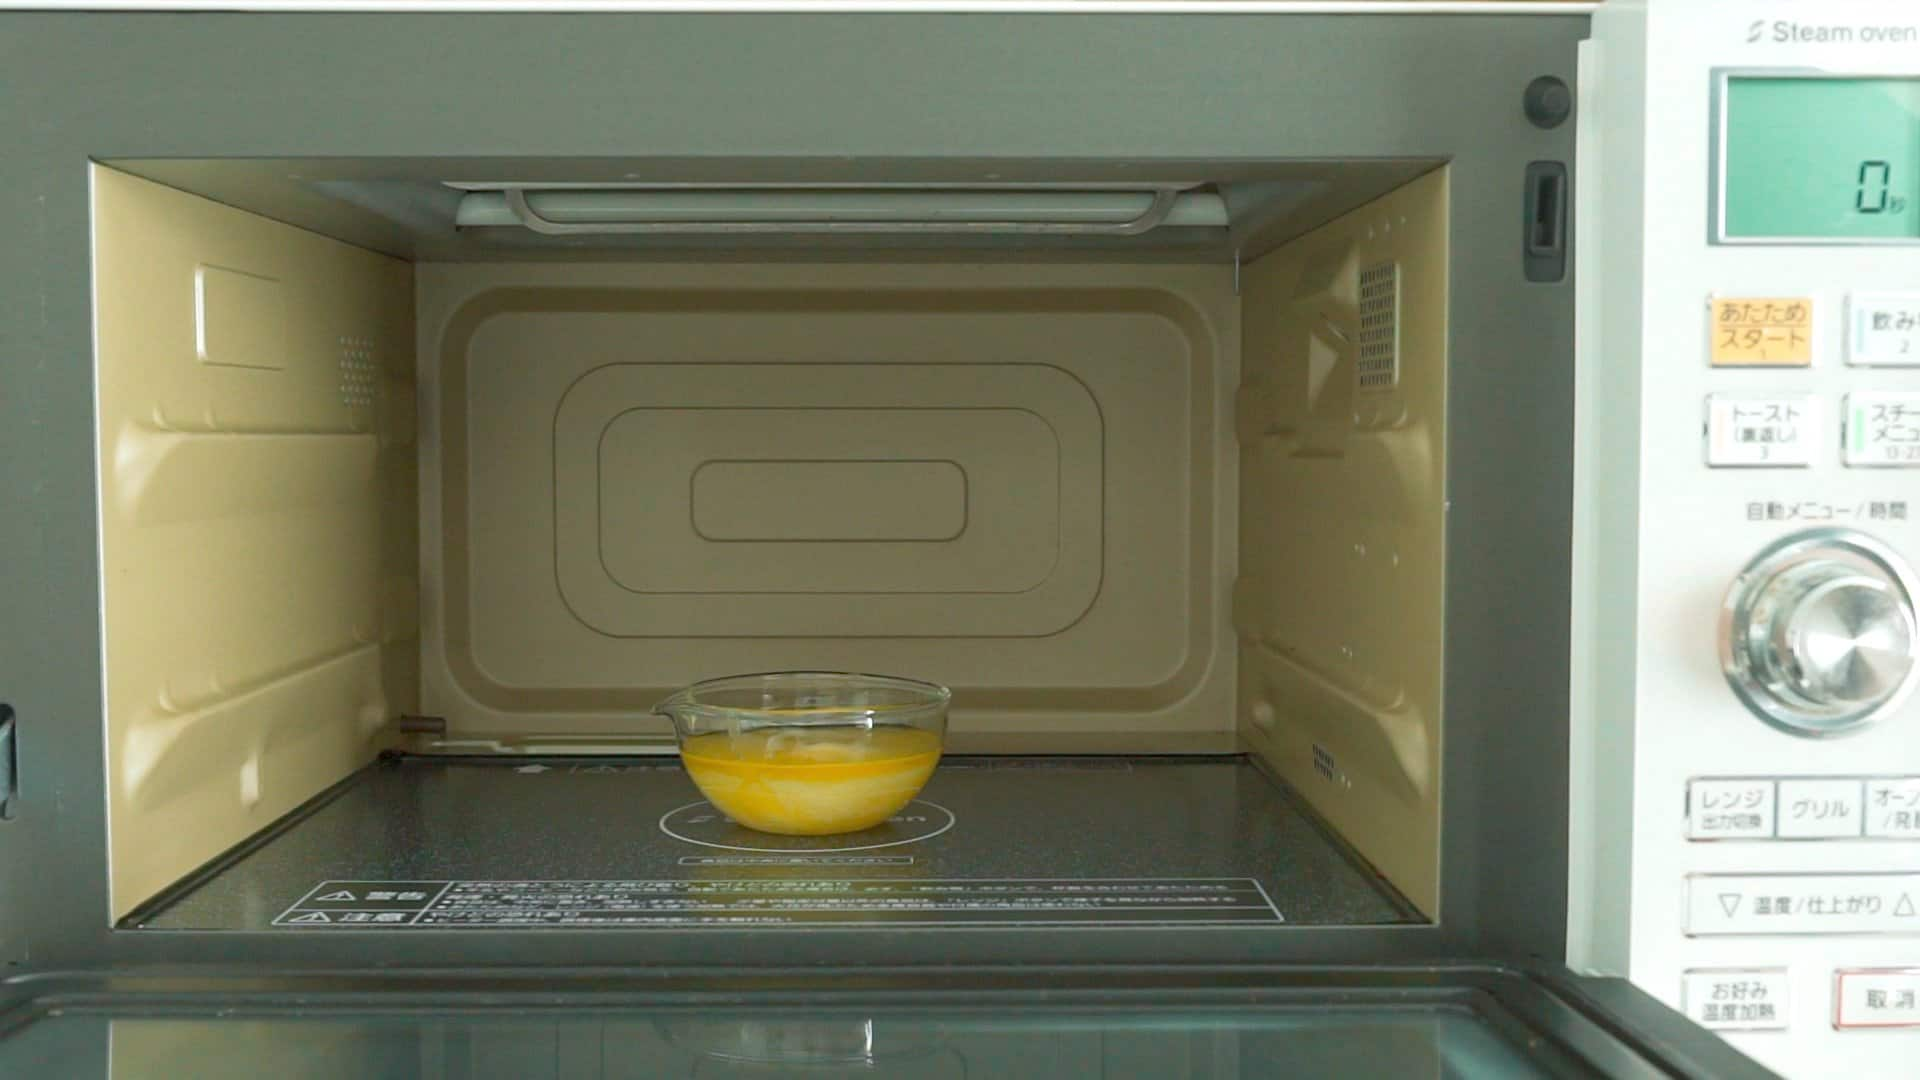 Melting butter in the microwave to make banana bread.